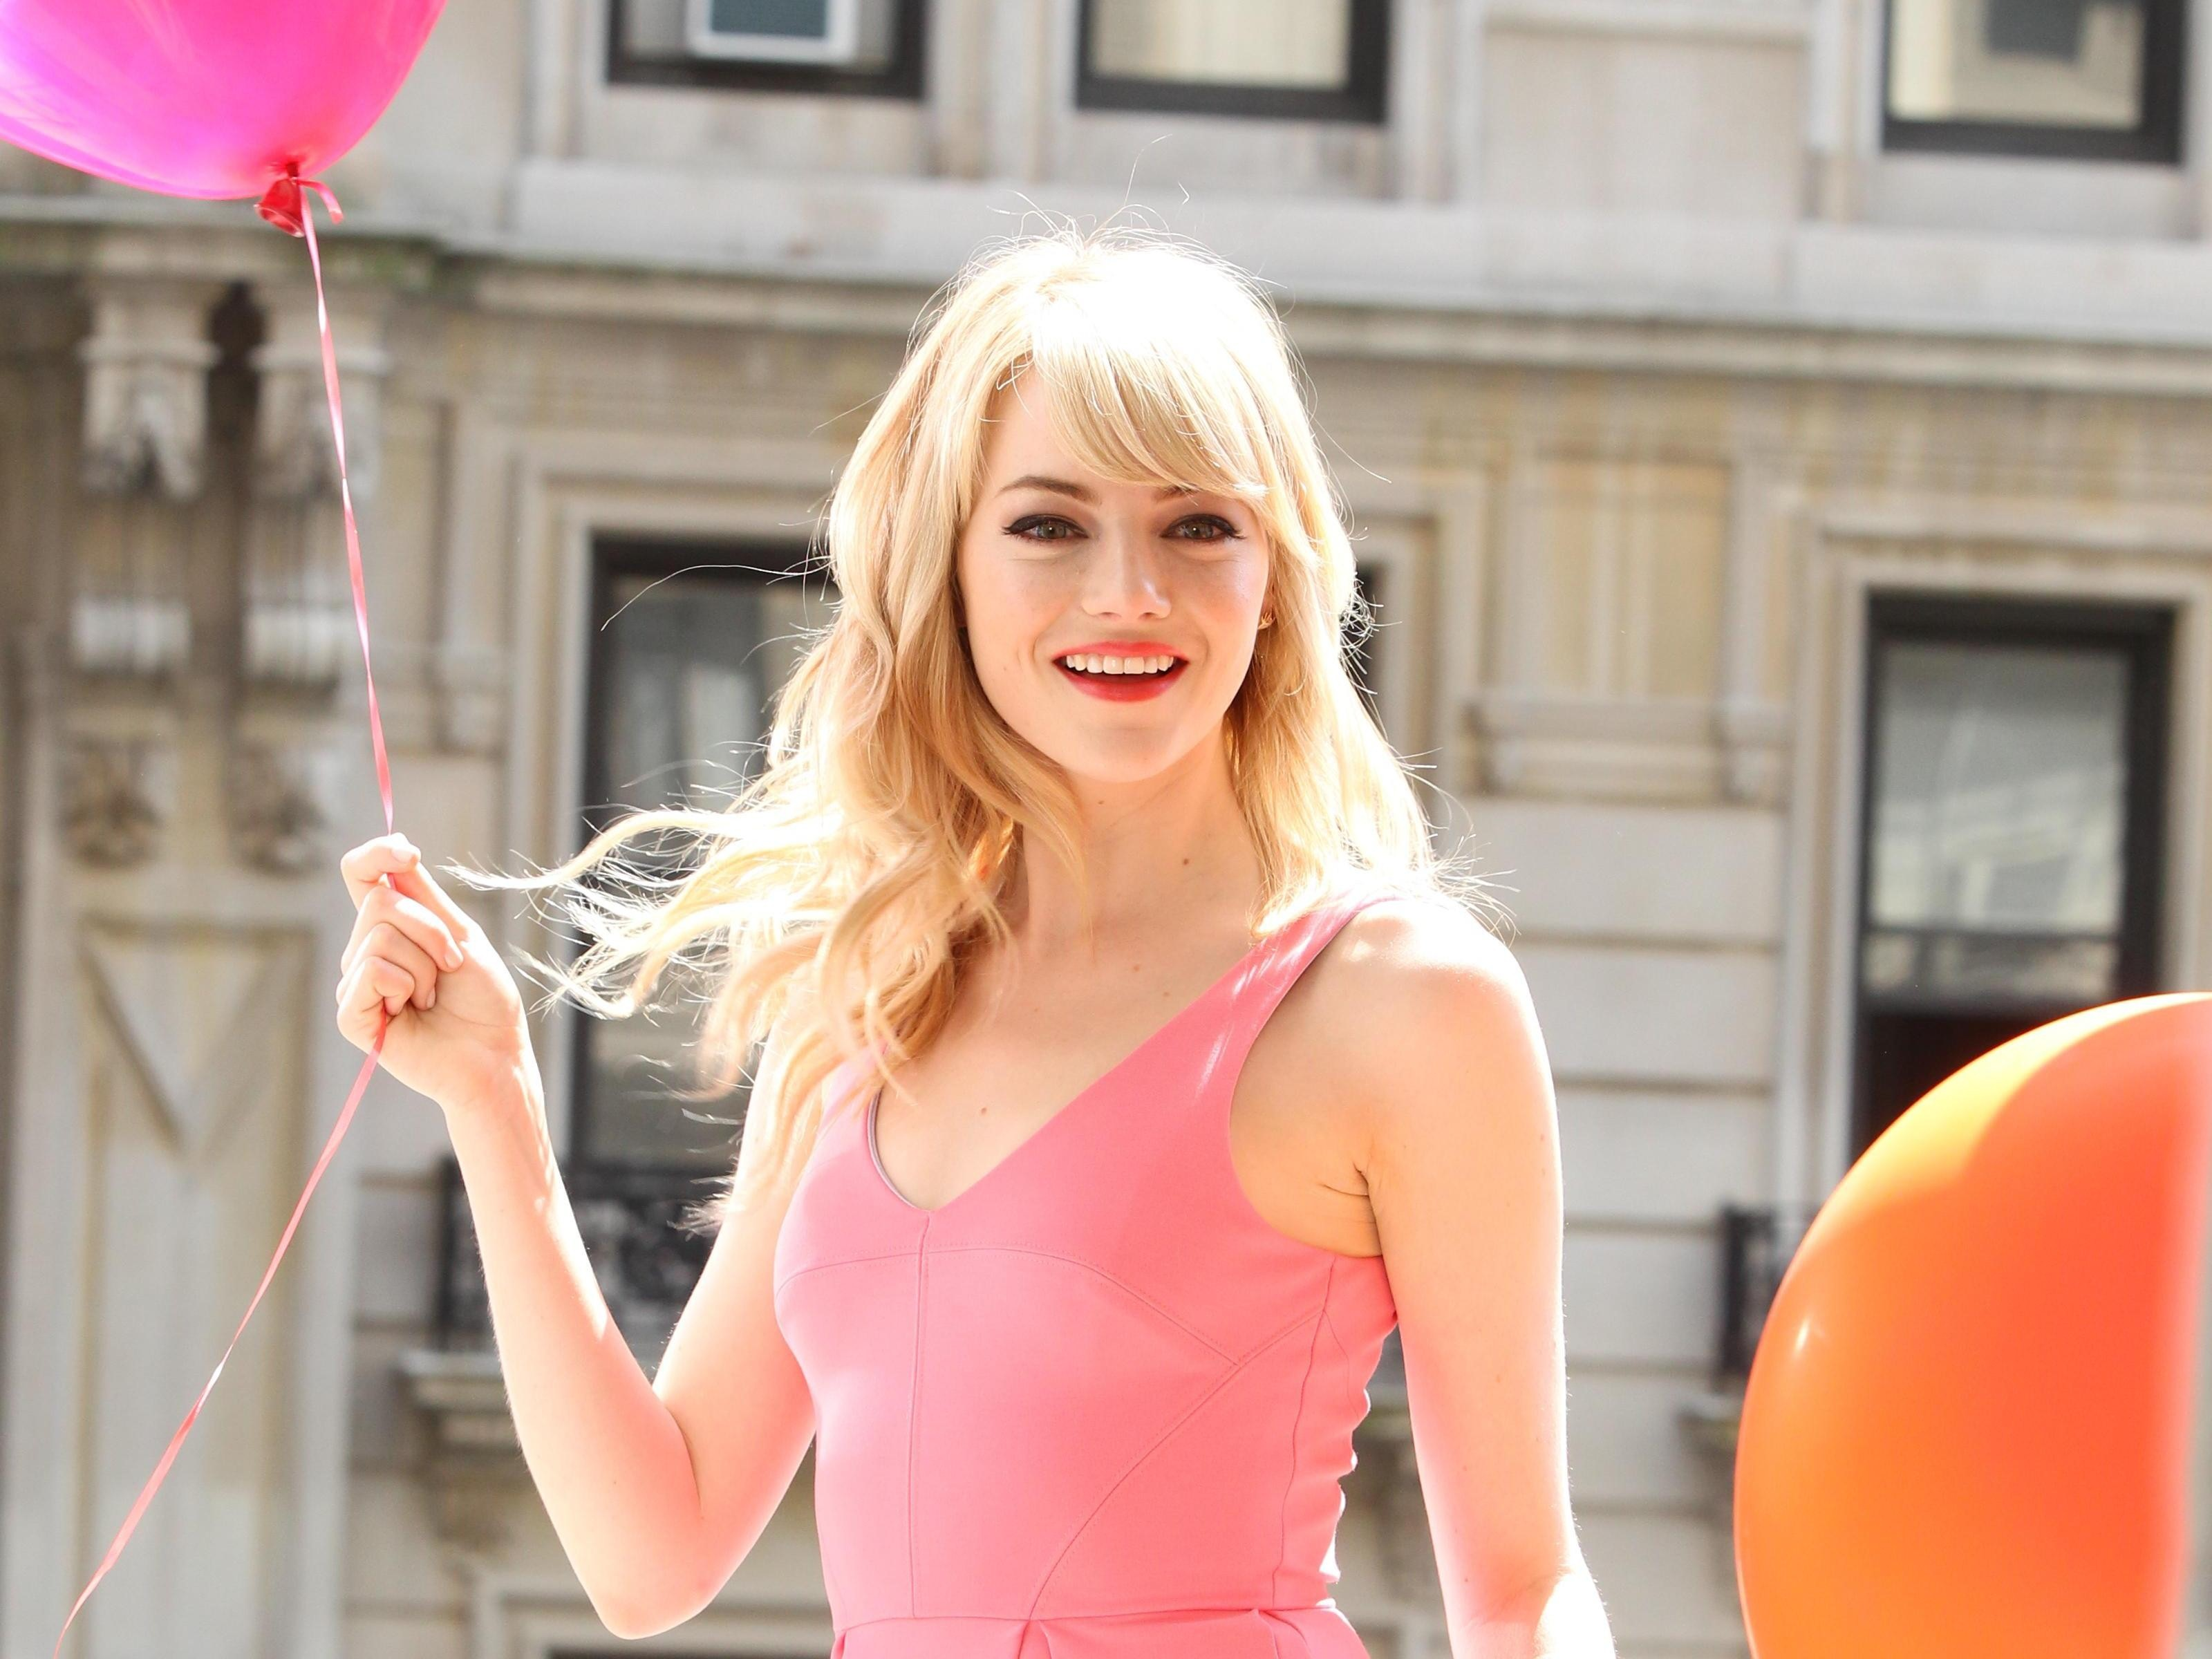 Emma Stone Actress Pink Baloons 3k Wallpapers and Free Stock